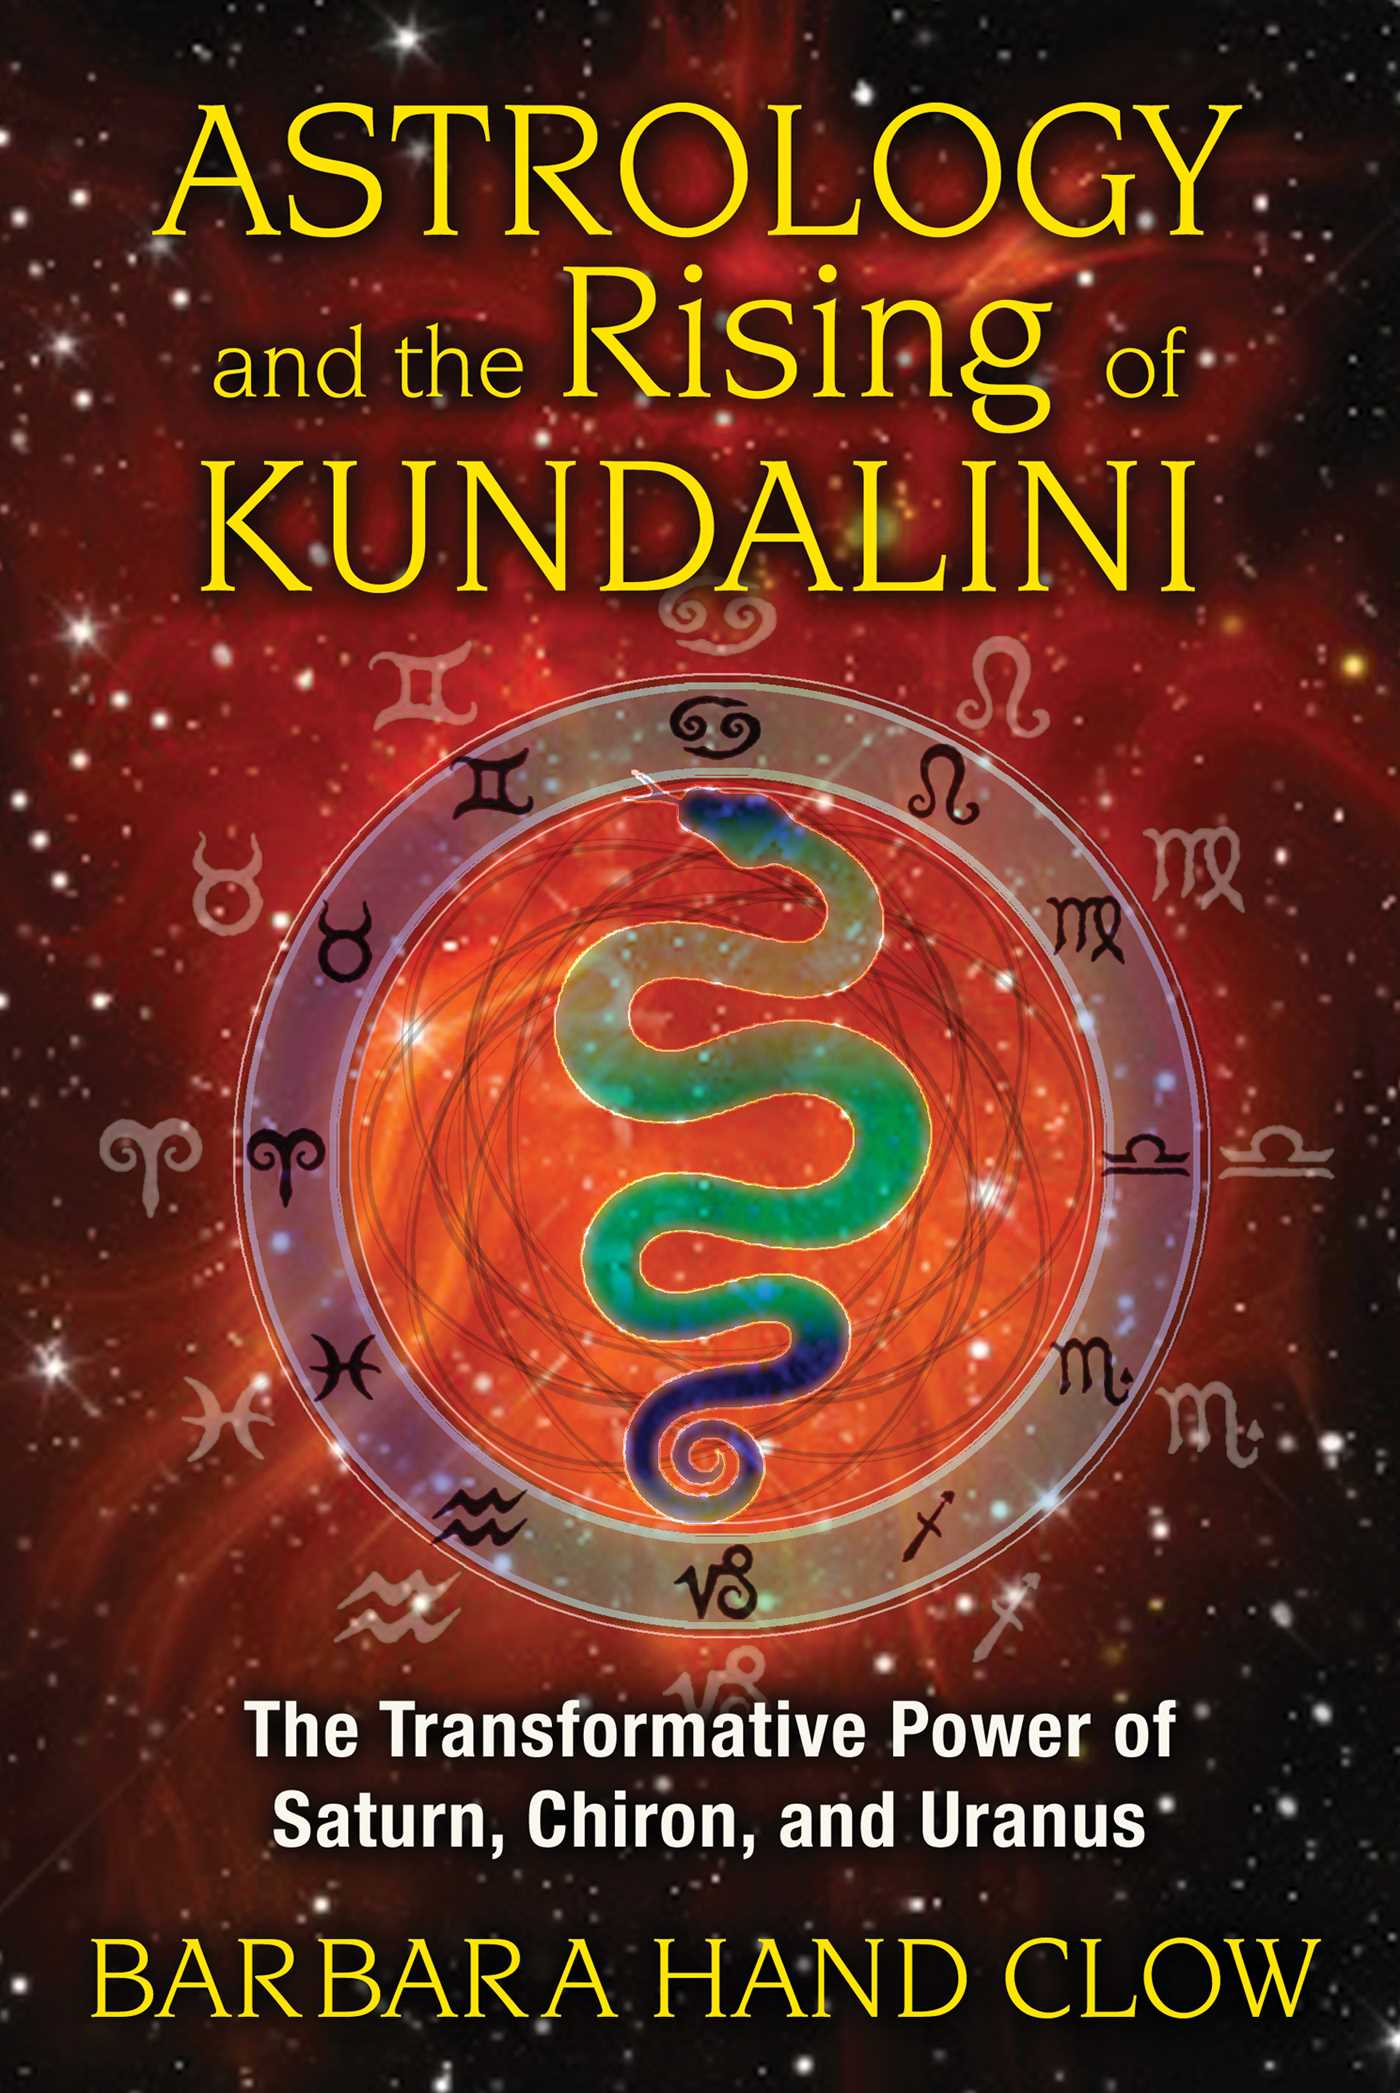 Astrology and the Rising of Kundalini eBook by Barbara Hand